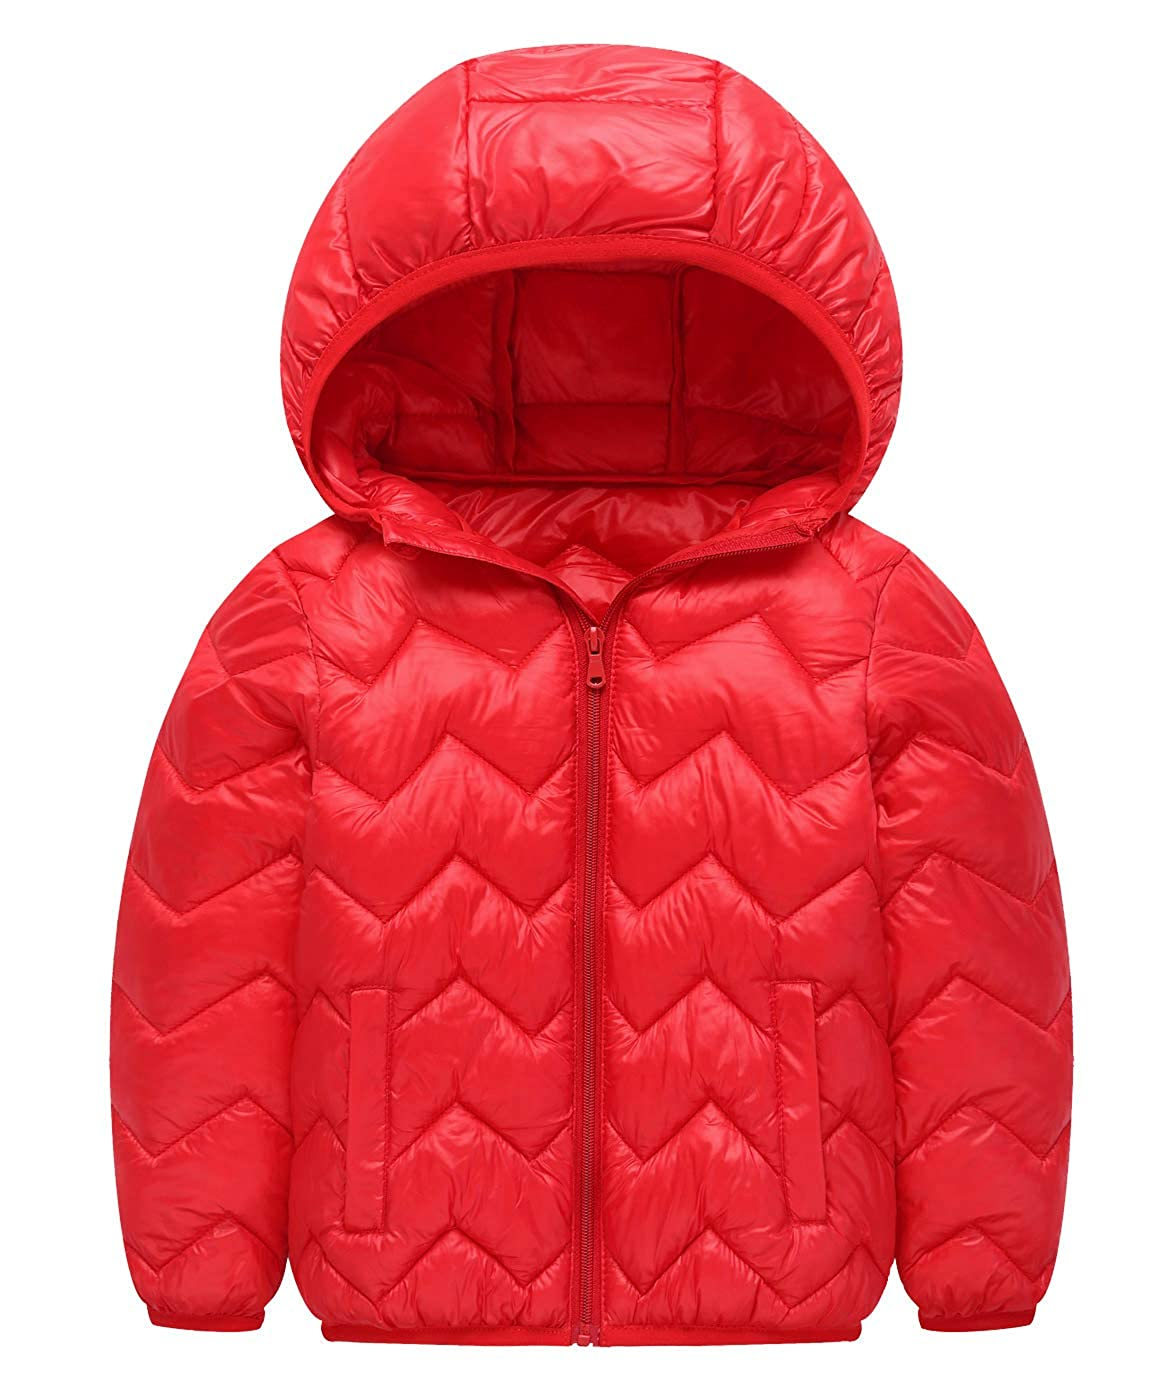 Aivtalk Boys Girls Lightweight Puffer Down Jacket Hooded Solid Winter Outerwear